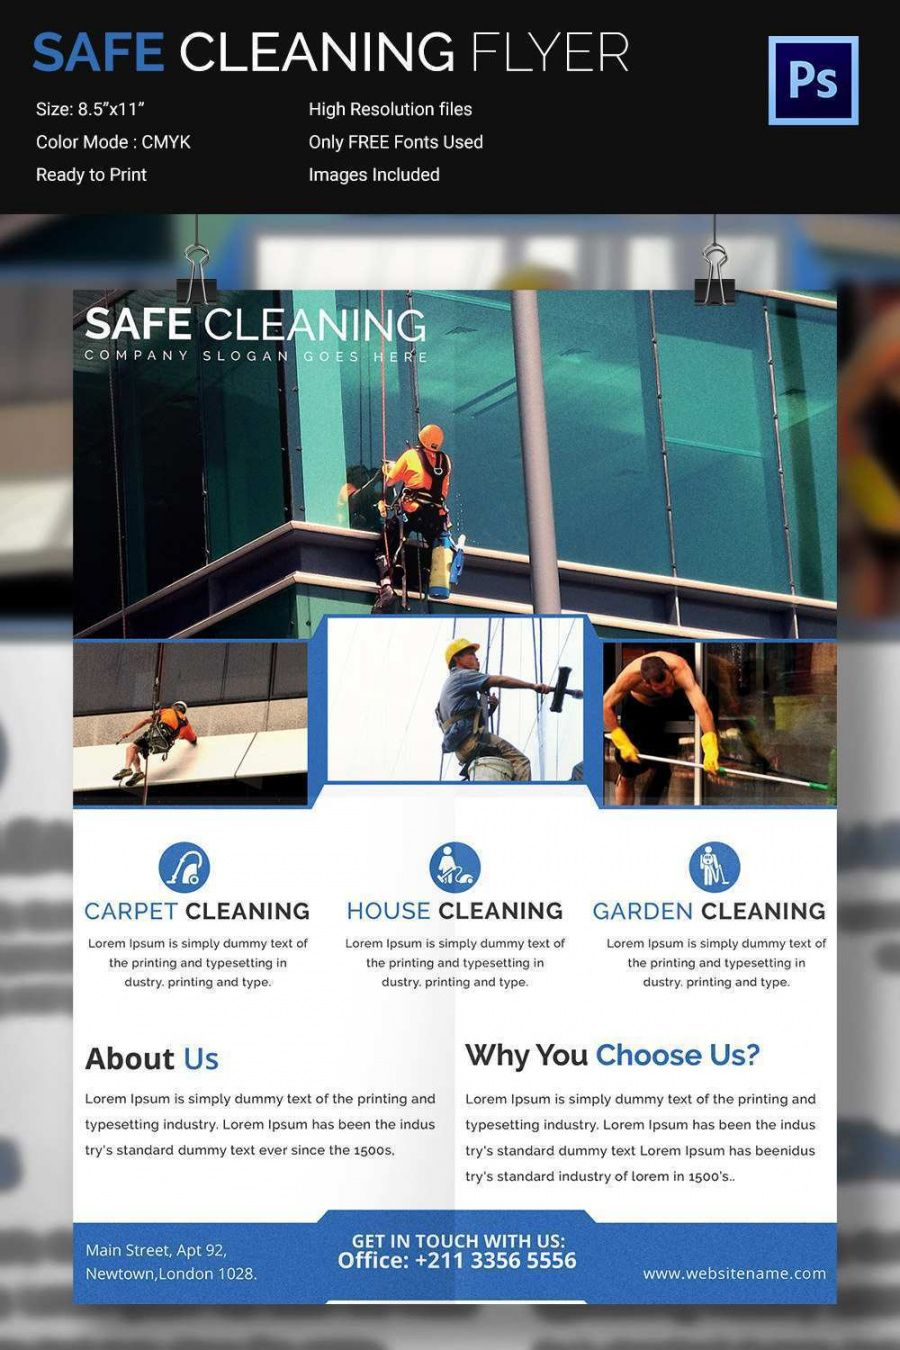 88 customize window cleaning flyer template psd file for window cleaning flyer template